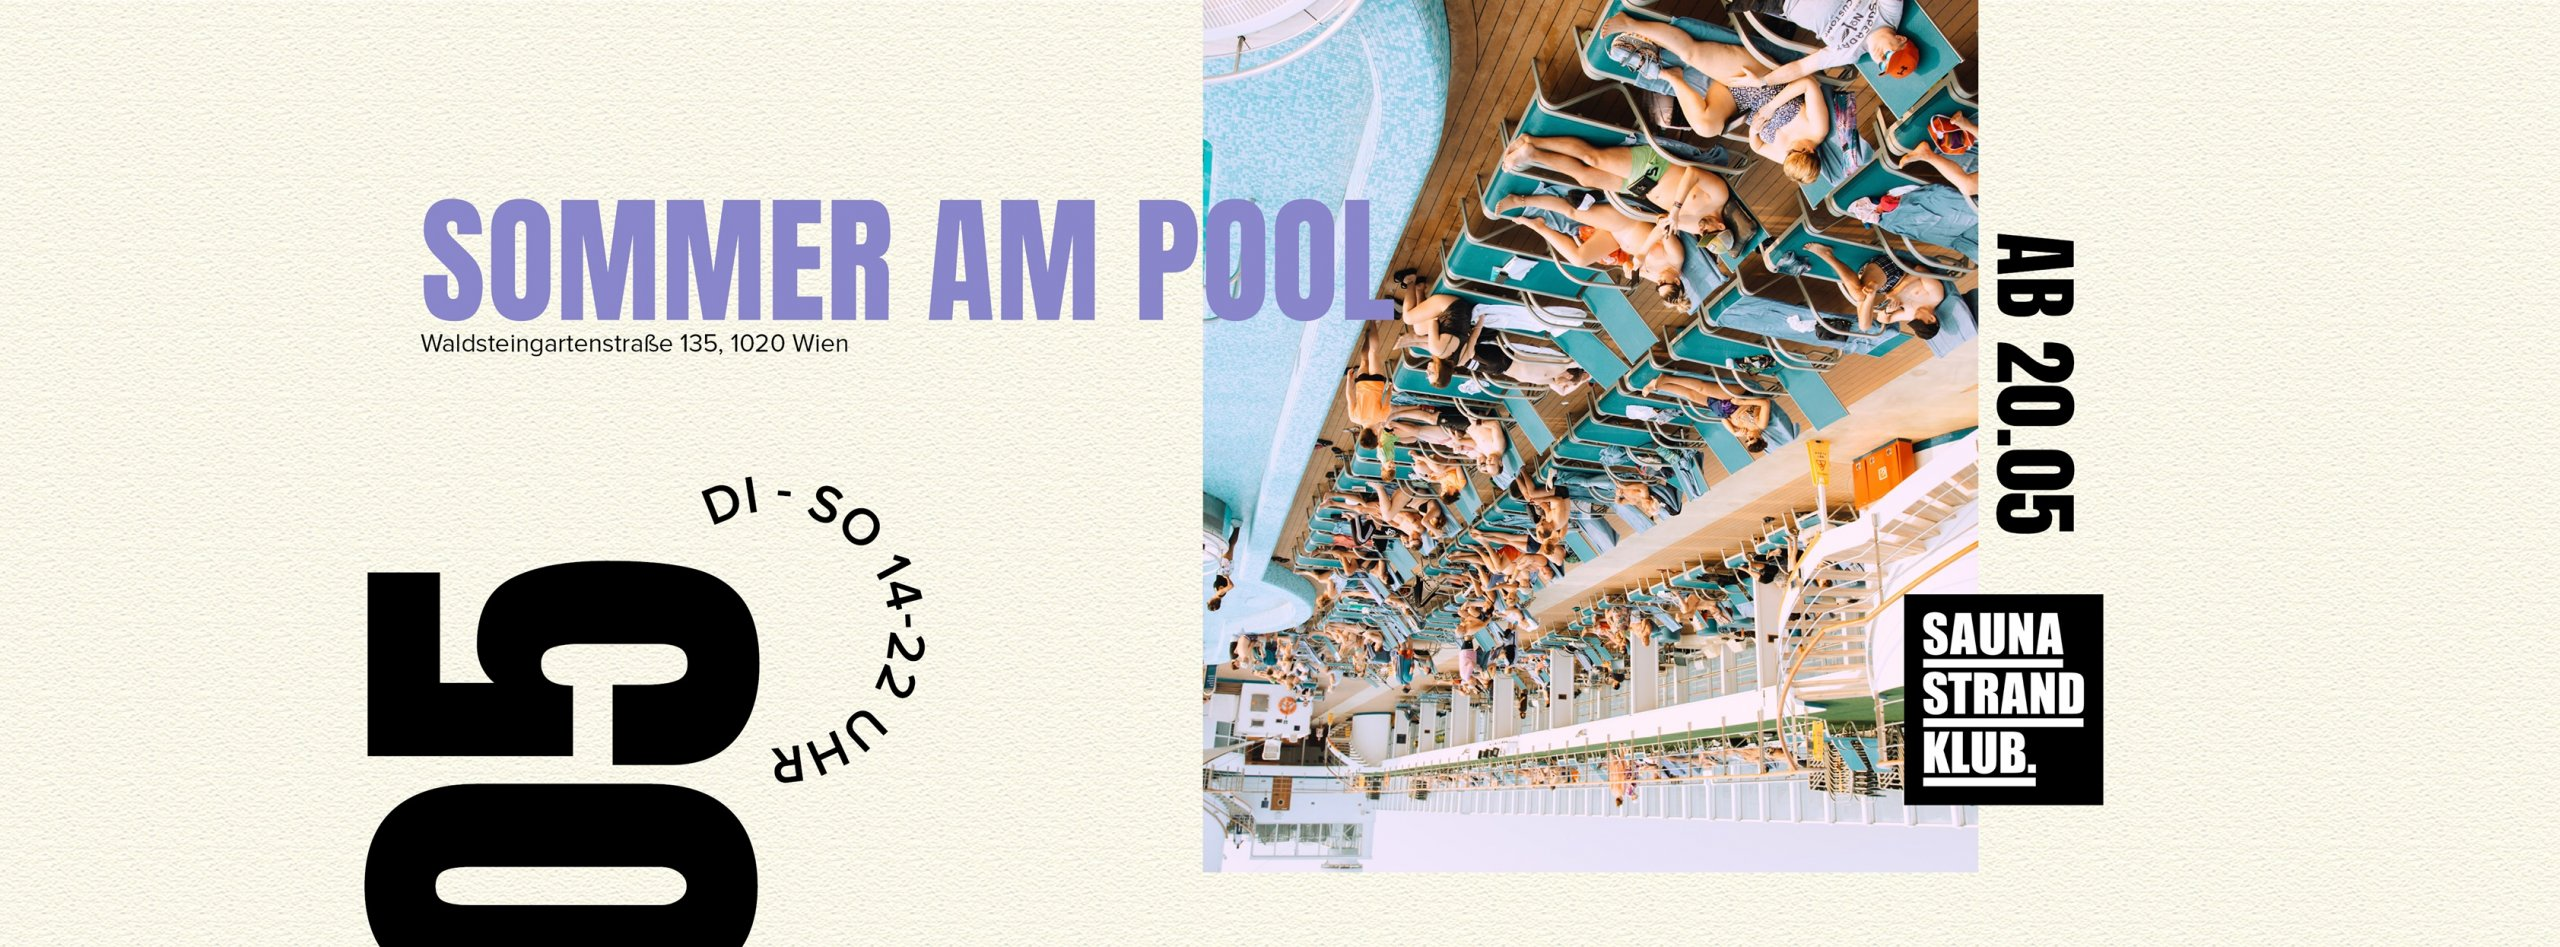 Events Wien: Sommer am Pool Opening